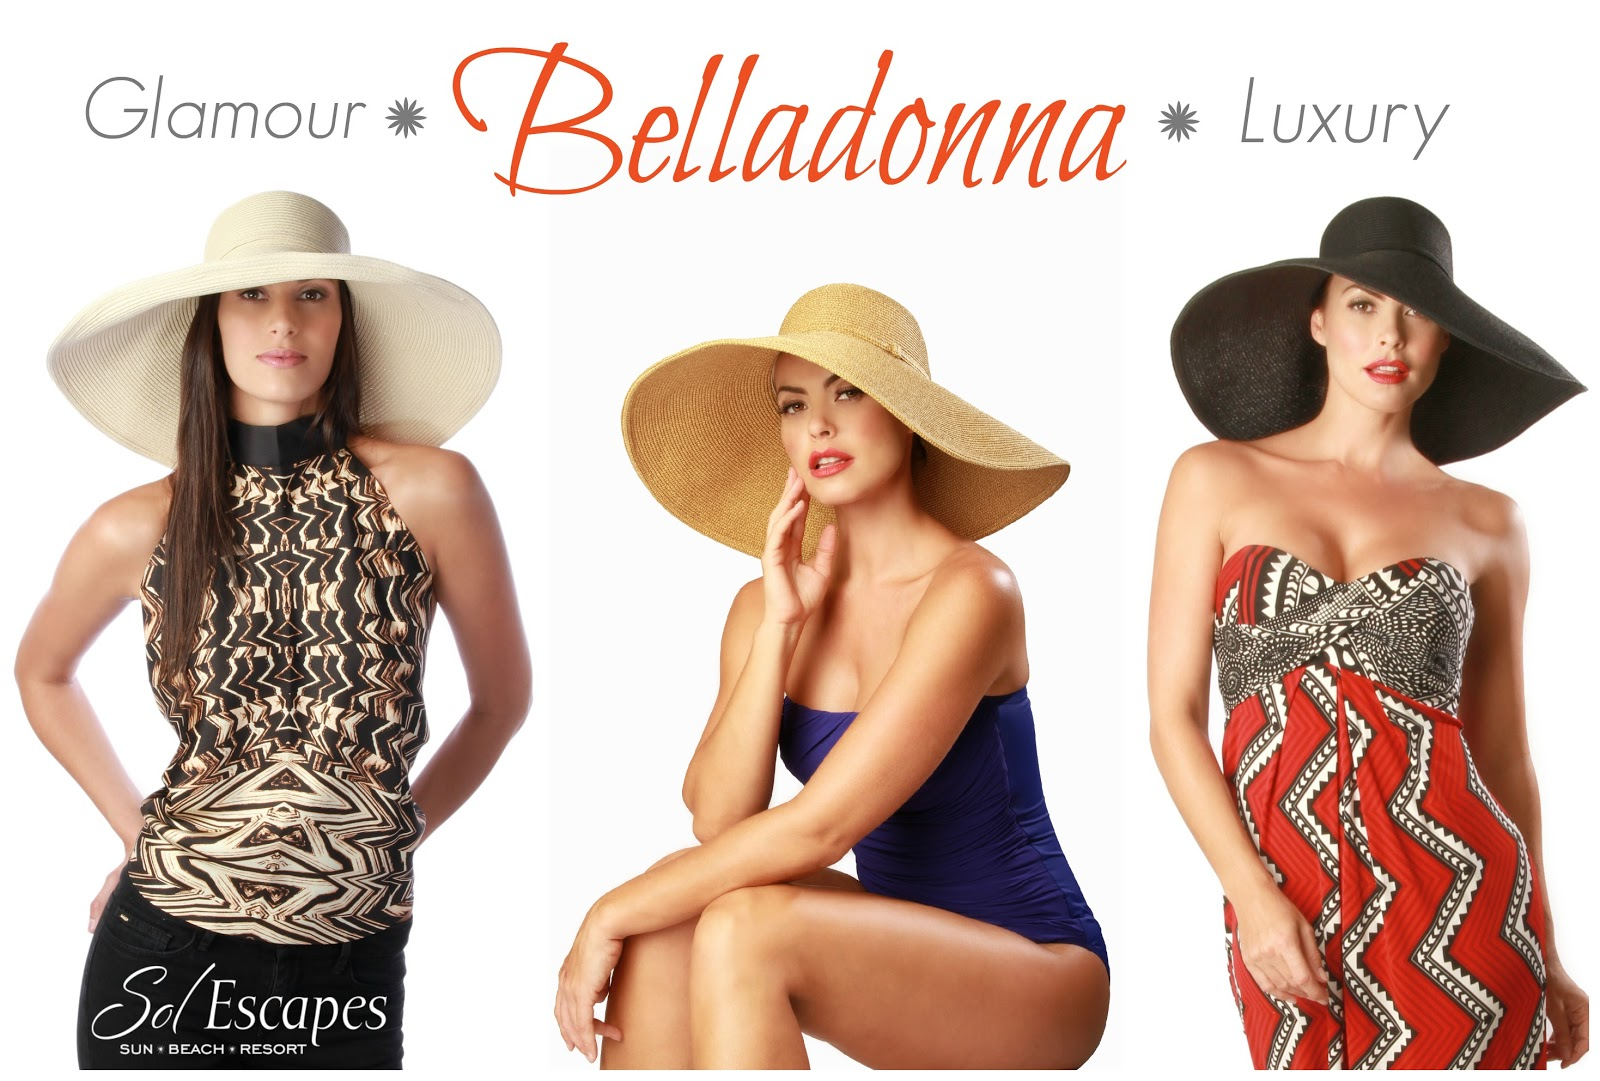 http://www.solescapes.com/SearchResults.asp?Search=belladonna&Submit=